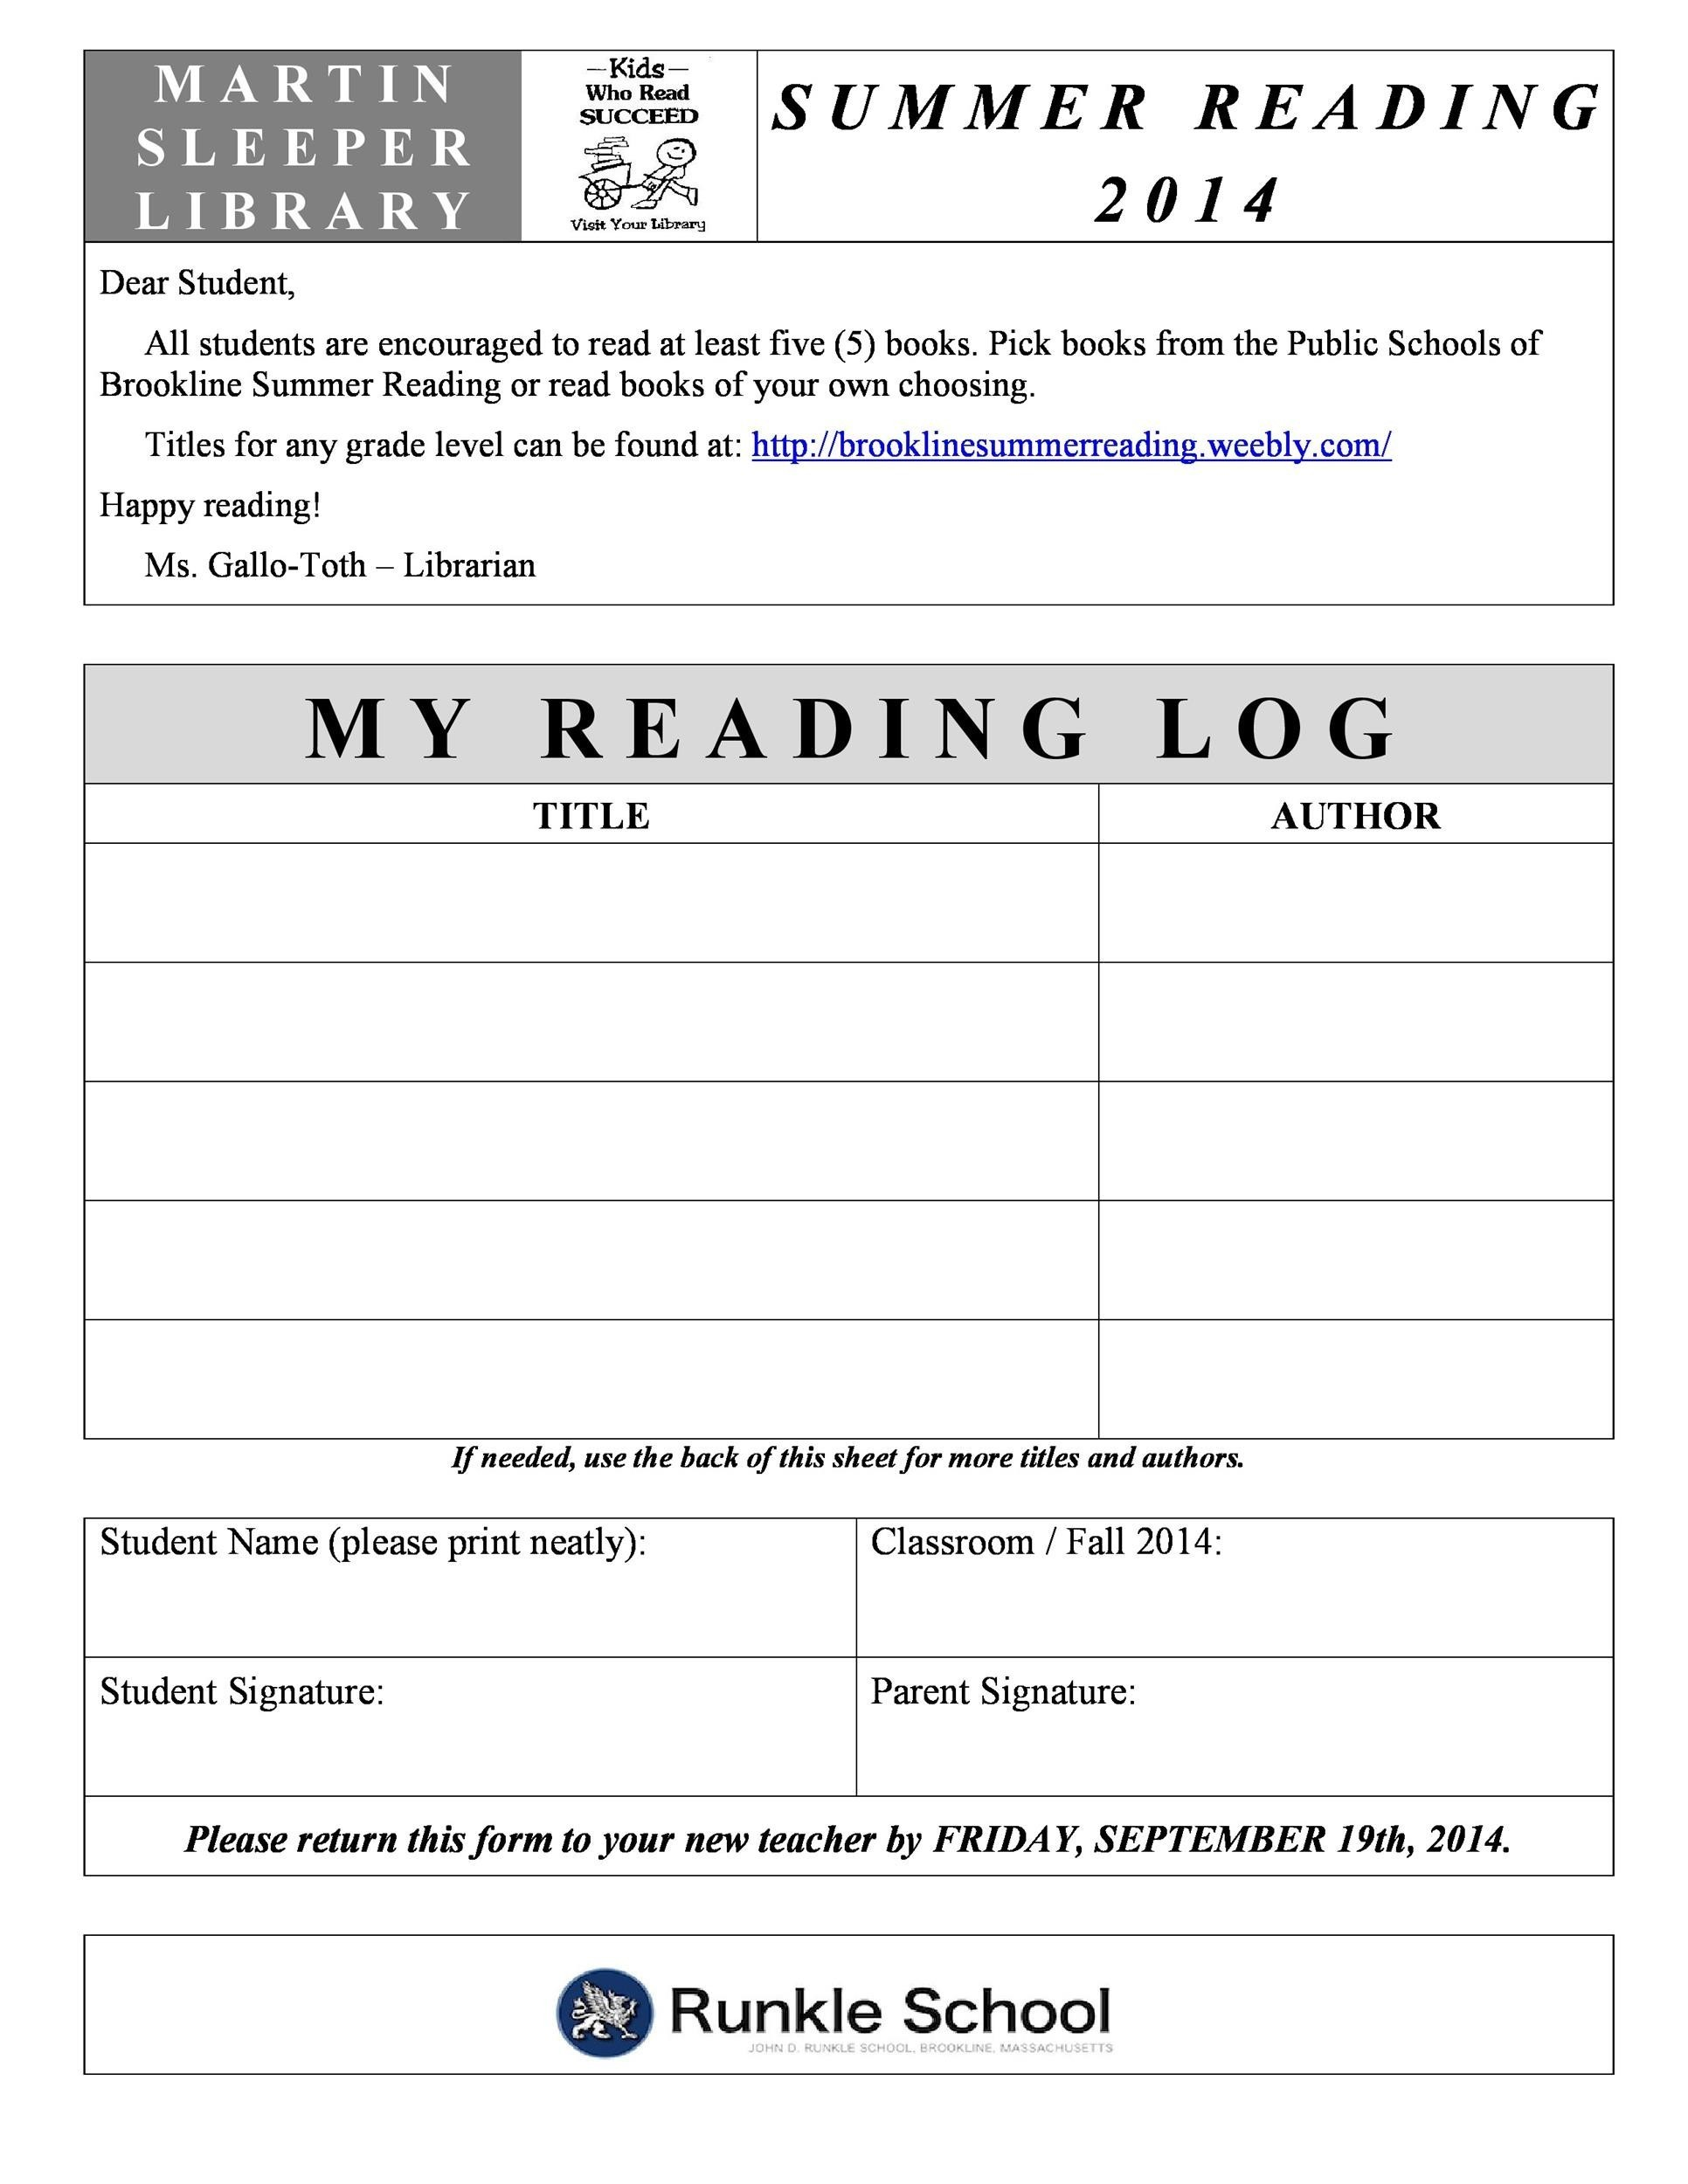 Free reading log template 47